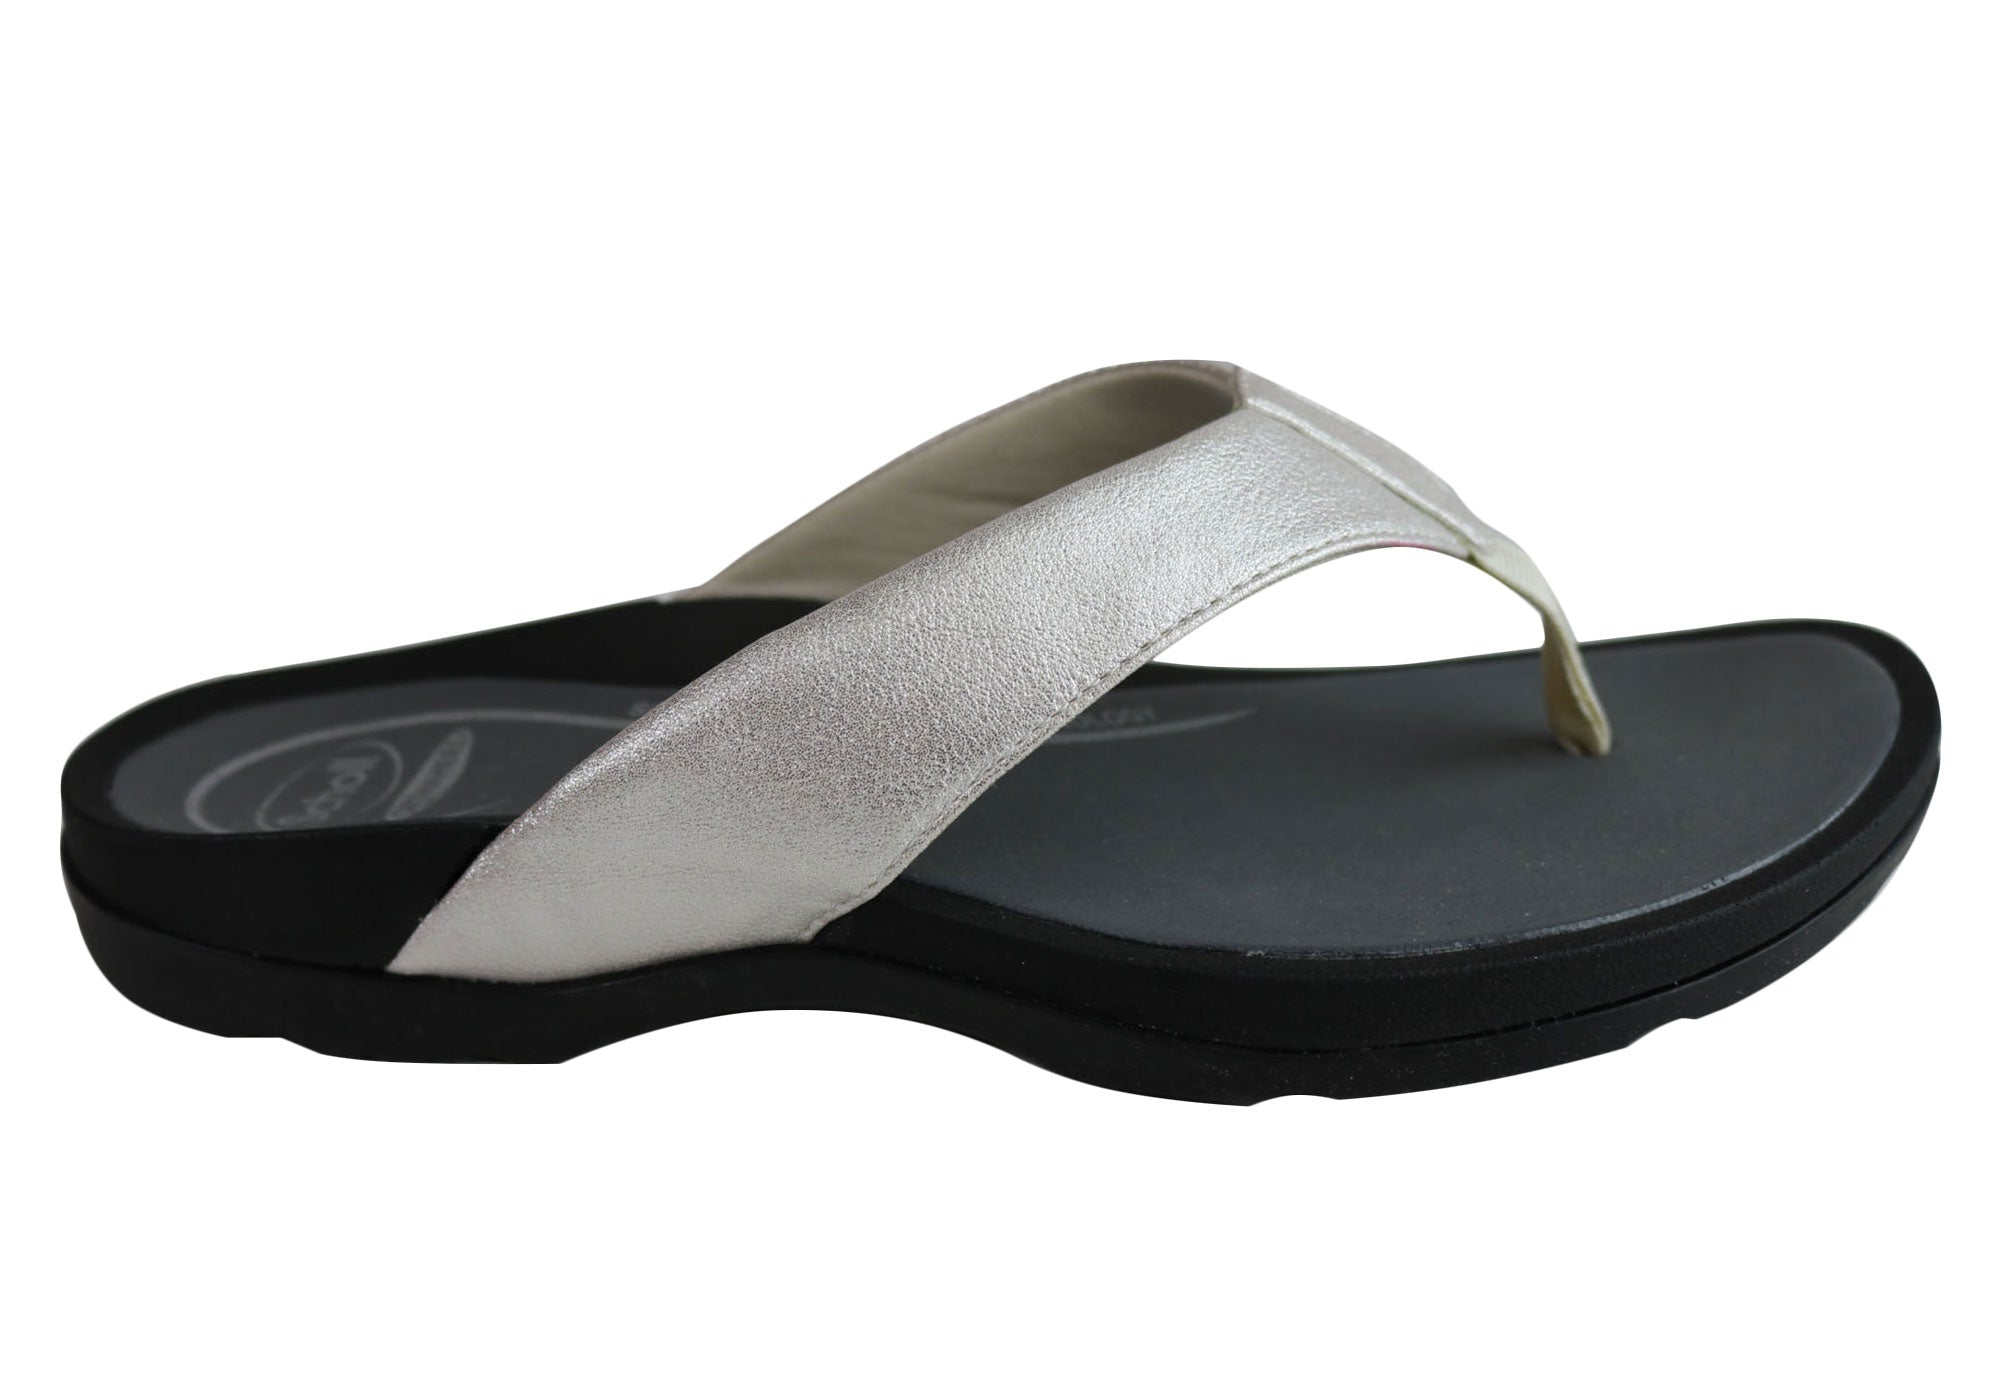 Details about Scholl Orthaheel Treasure Womens Comfort Supportive Thongs Flip Flops SSA